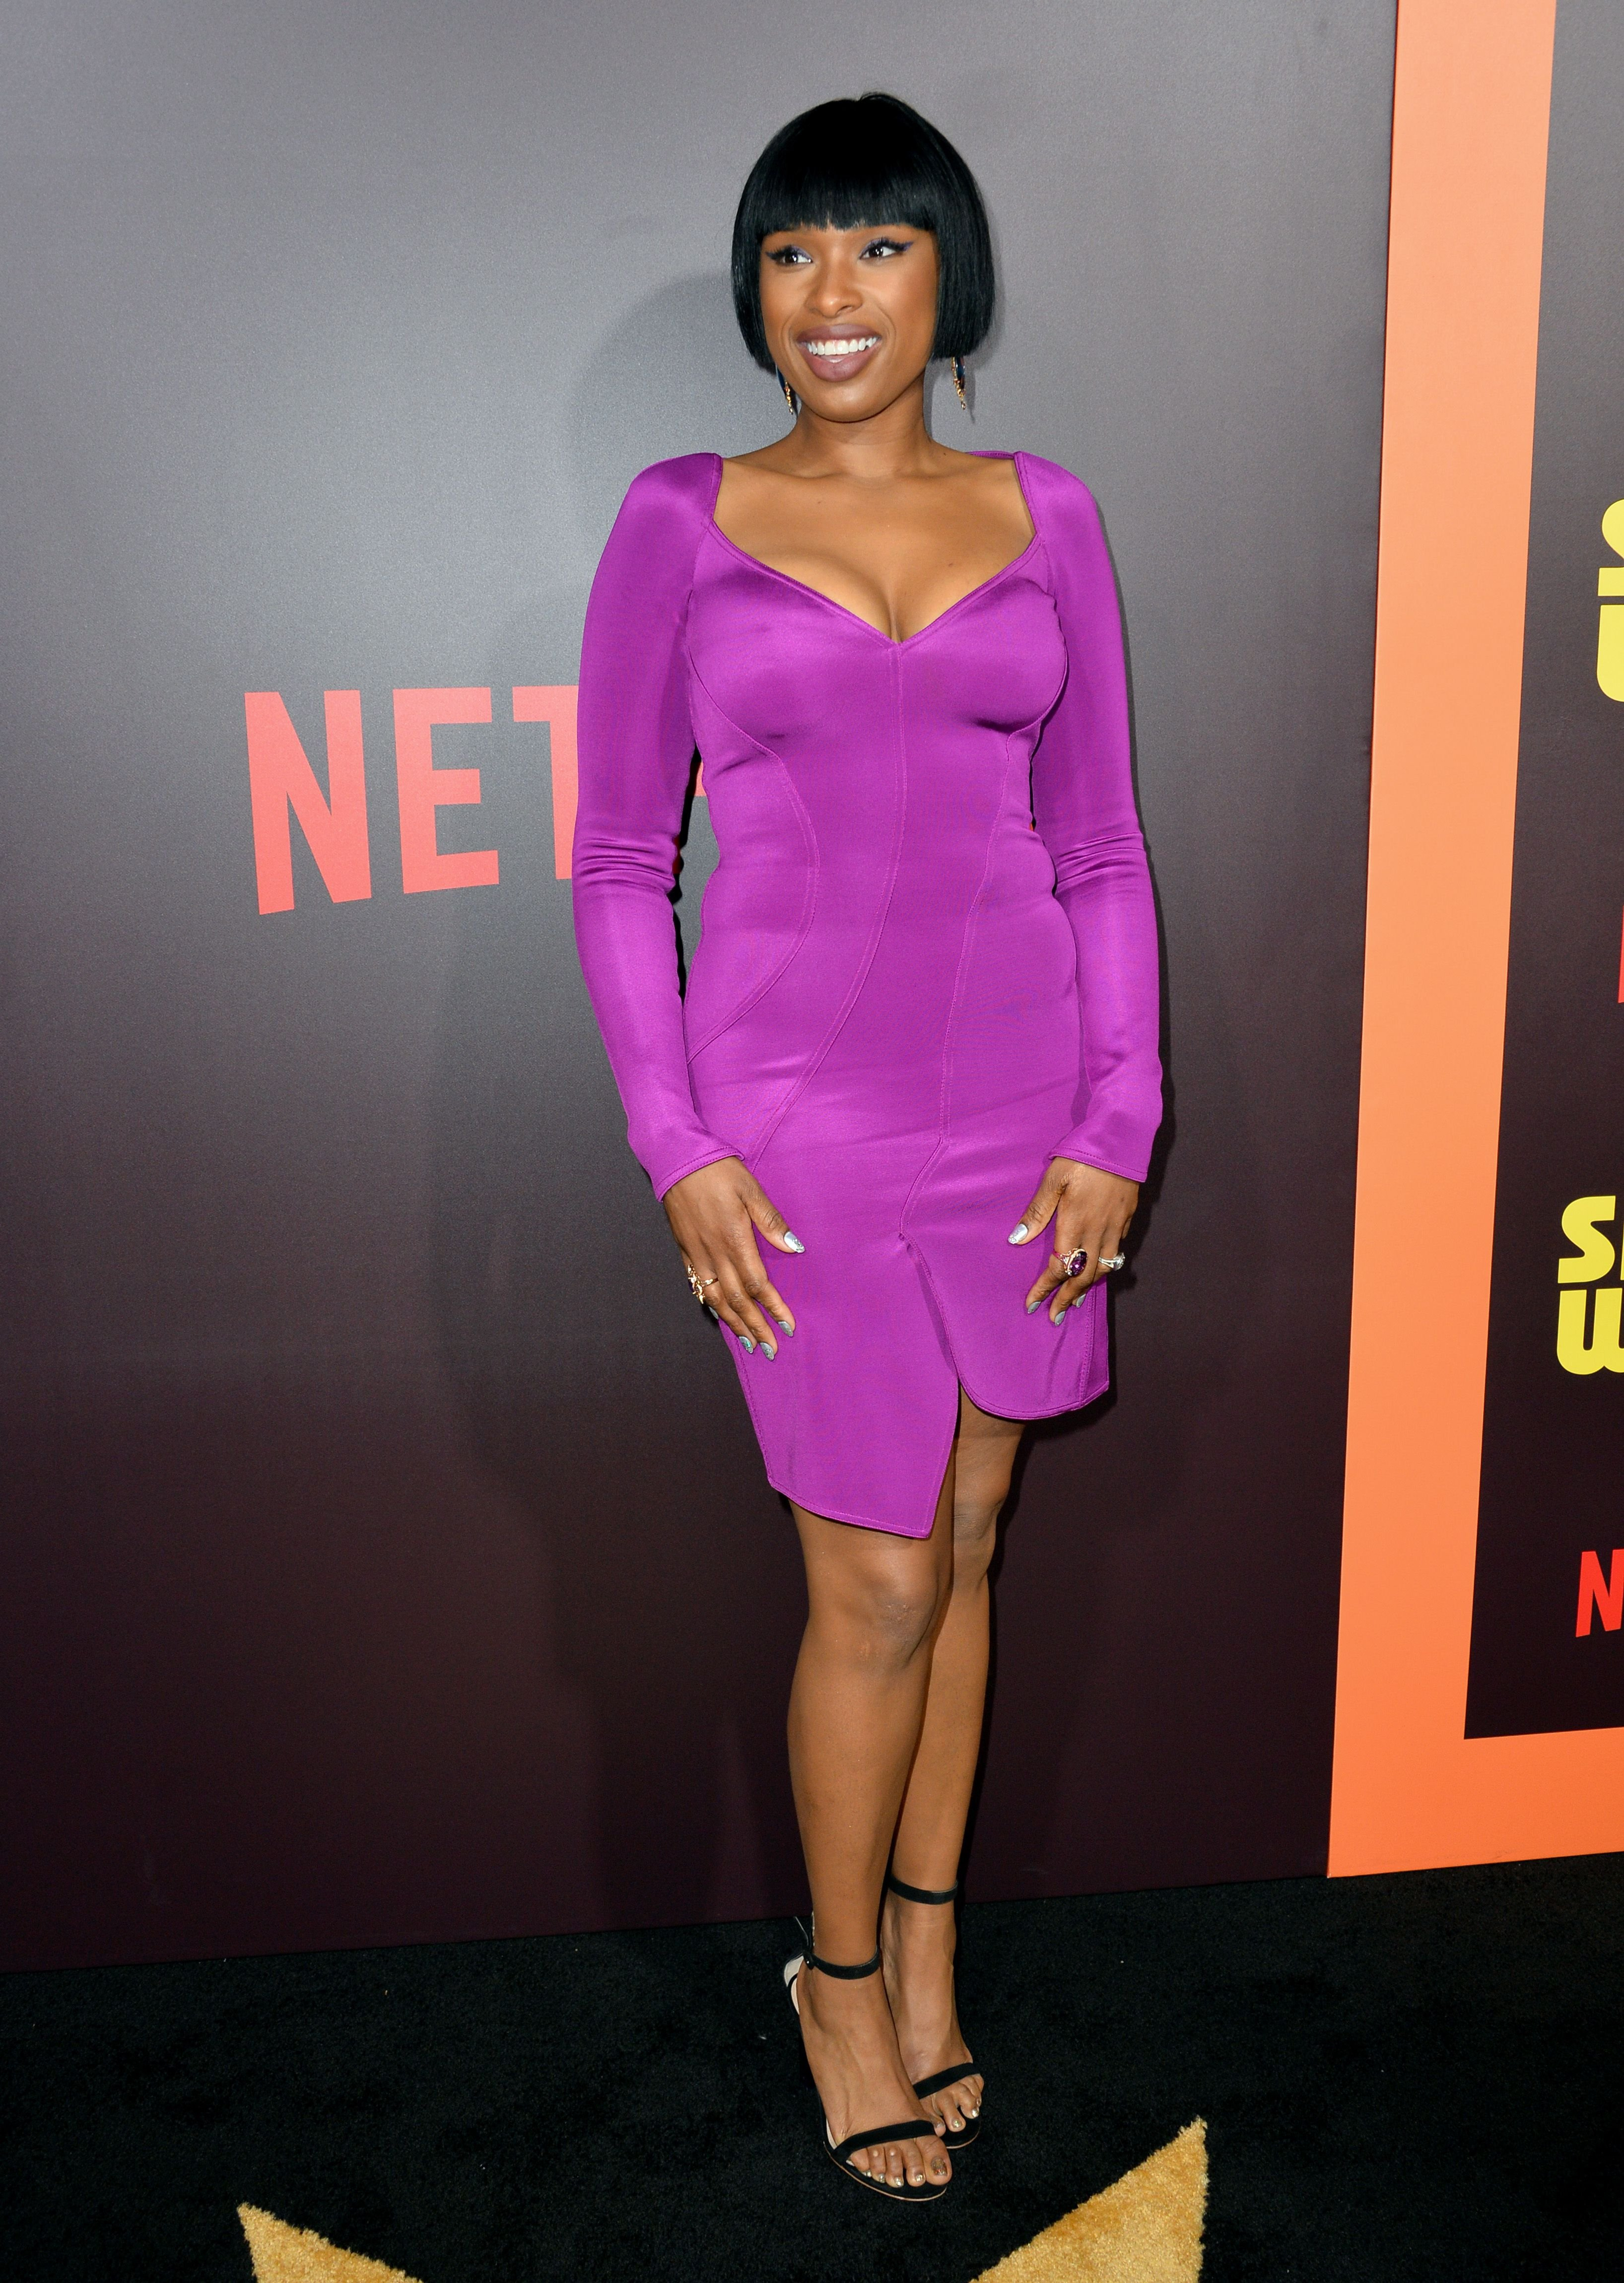 """Jennifer Hudson at the premiere for """"Sandy Wexler"""" in Hollywood. [Date unspecified]   Source: Shutterstock"""